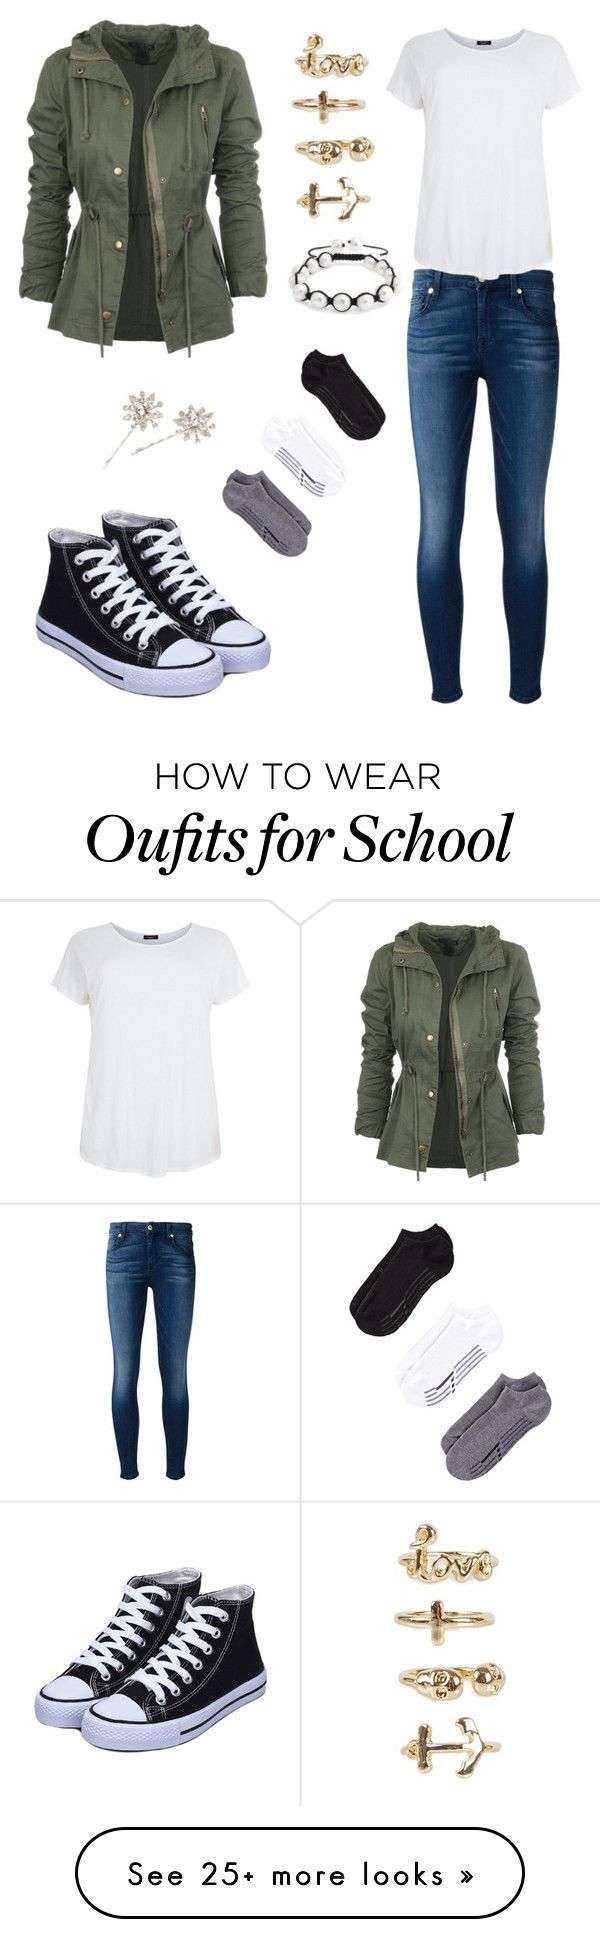 """""""A topical Day At School"""" by lilysantamaria80 on Polyvore featuring 7 For All Mankind, Zella, Bling Jewelry, Jennifer Behr and NLY Trend"""